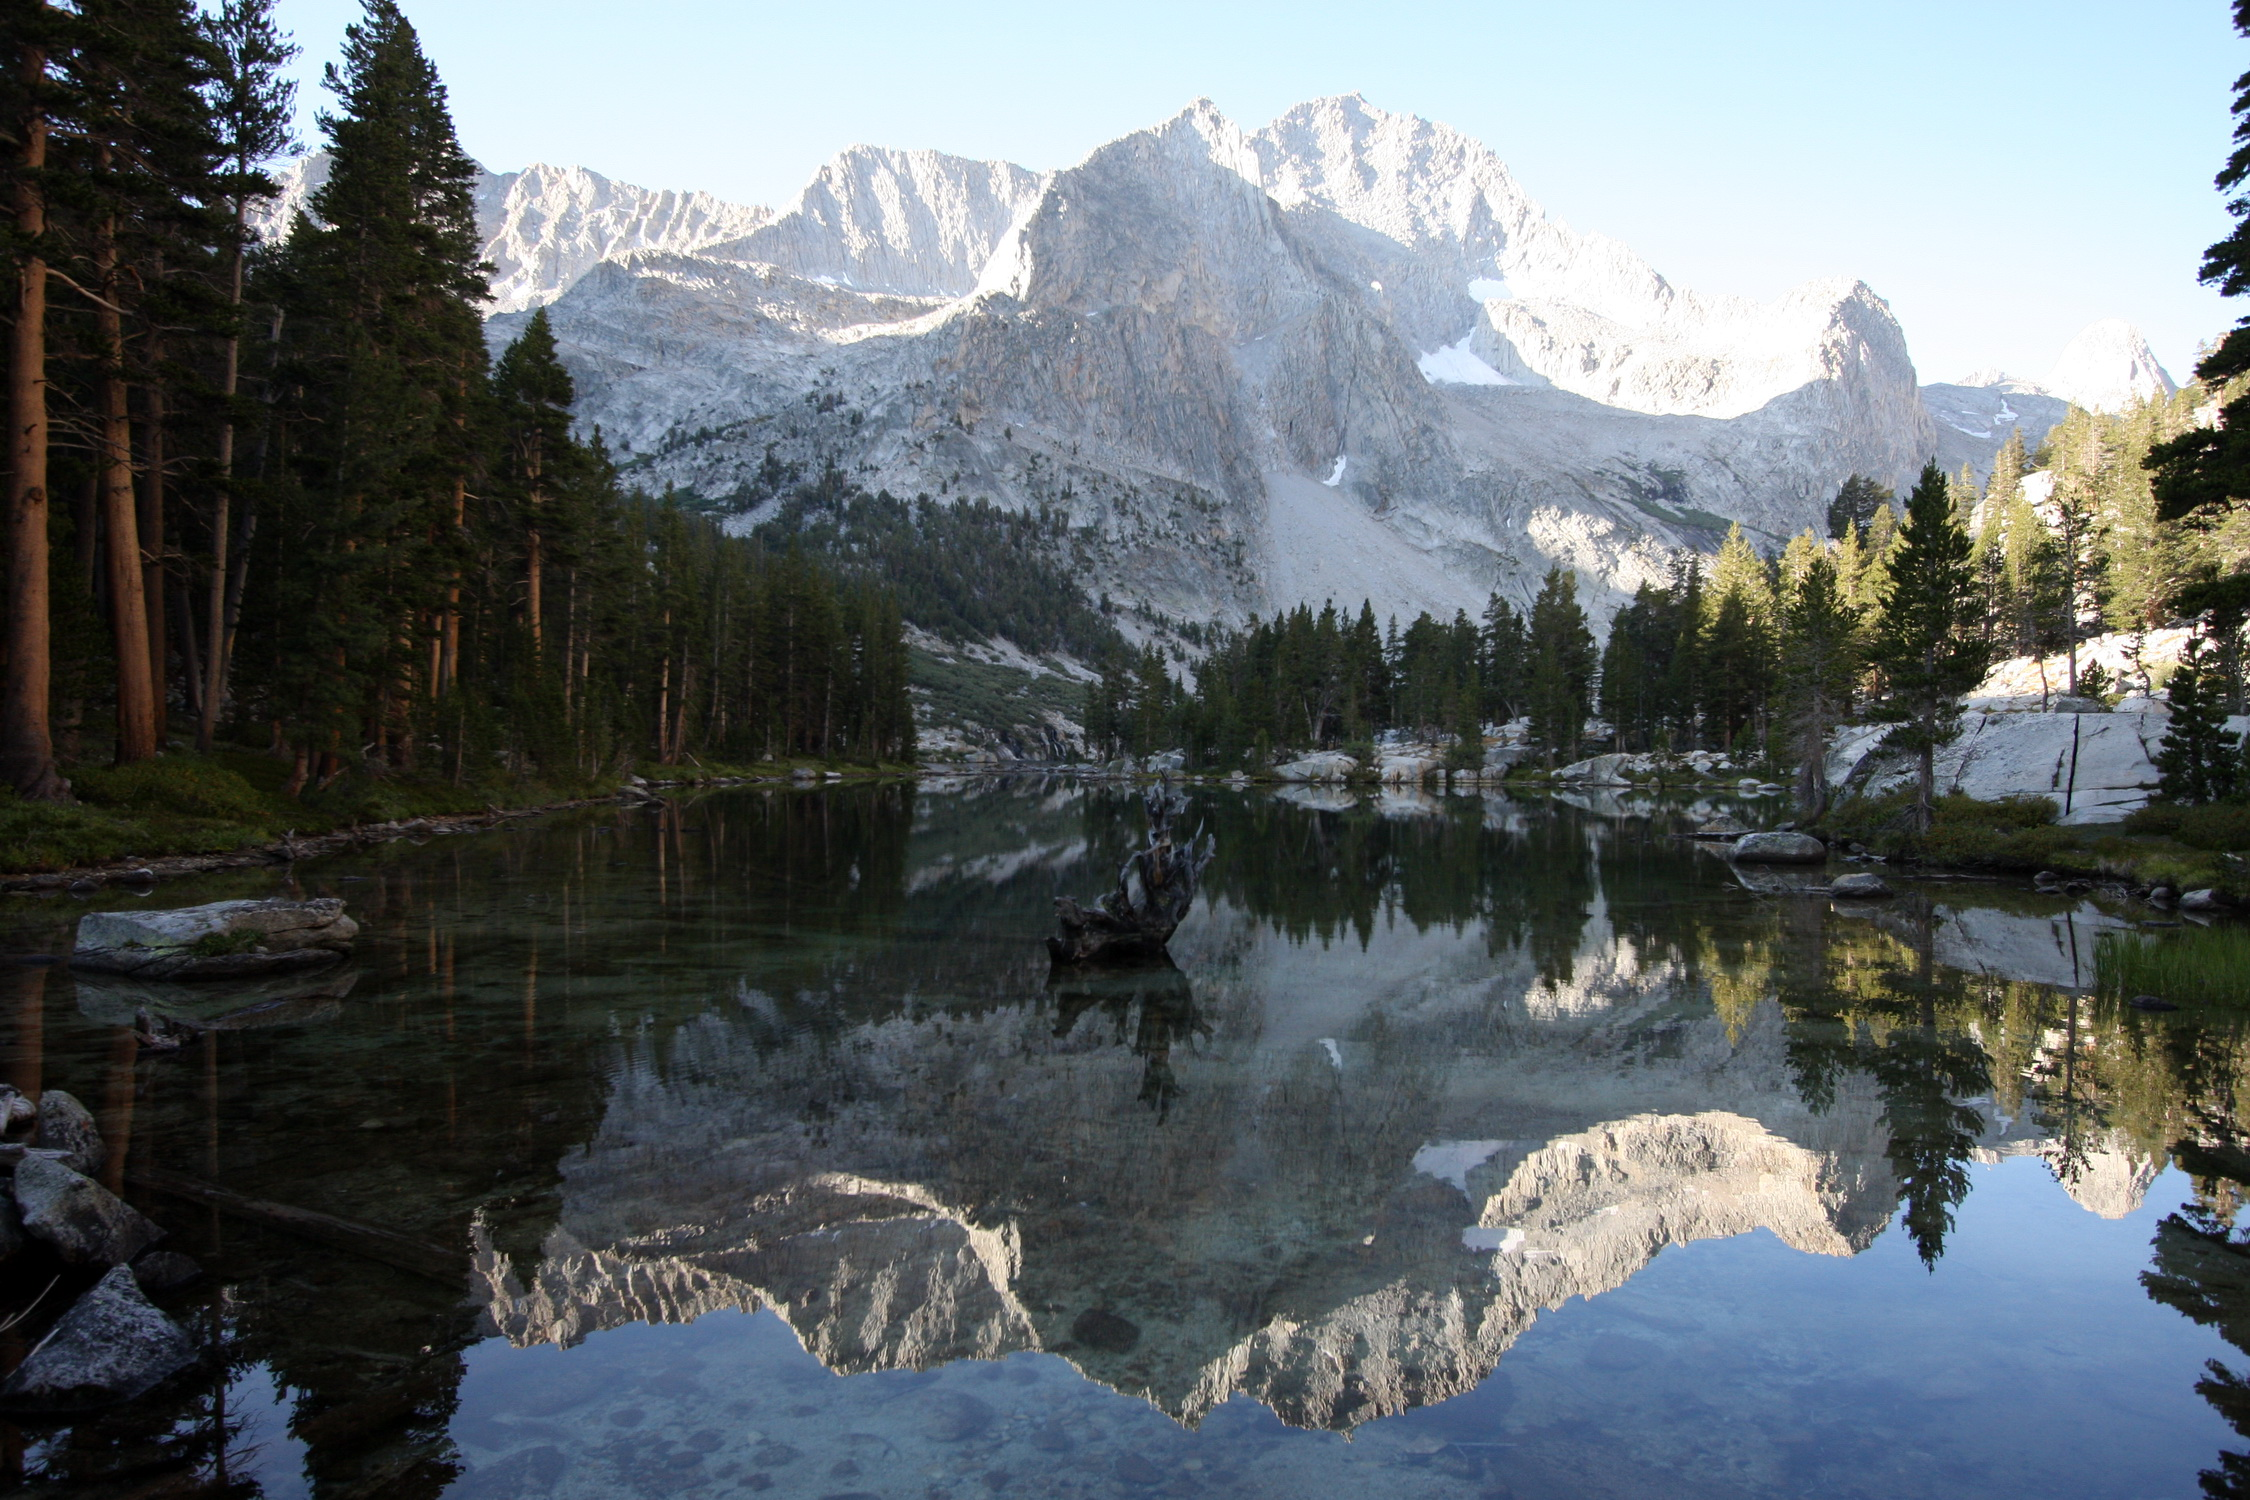 Wallpaper Lake Reflection Sequoia National Park 2250x1500 2250x1500